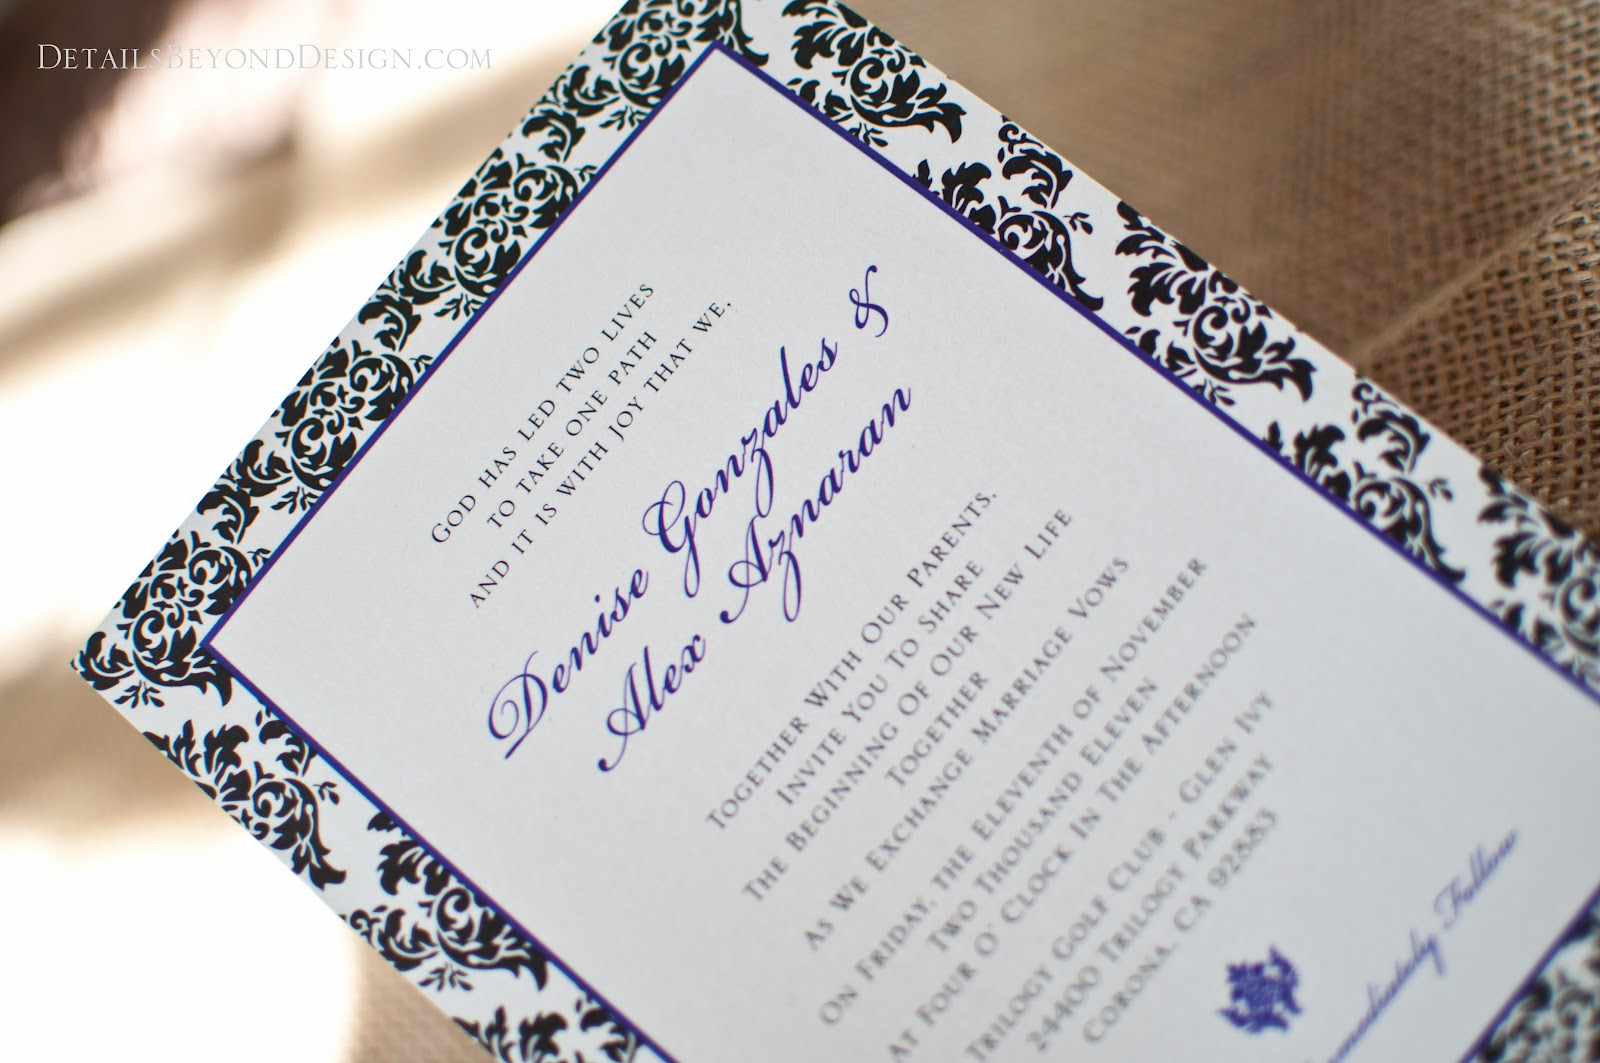 Details Beyond Design by Lauren: Wedding Invitations - Purple and ...